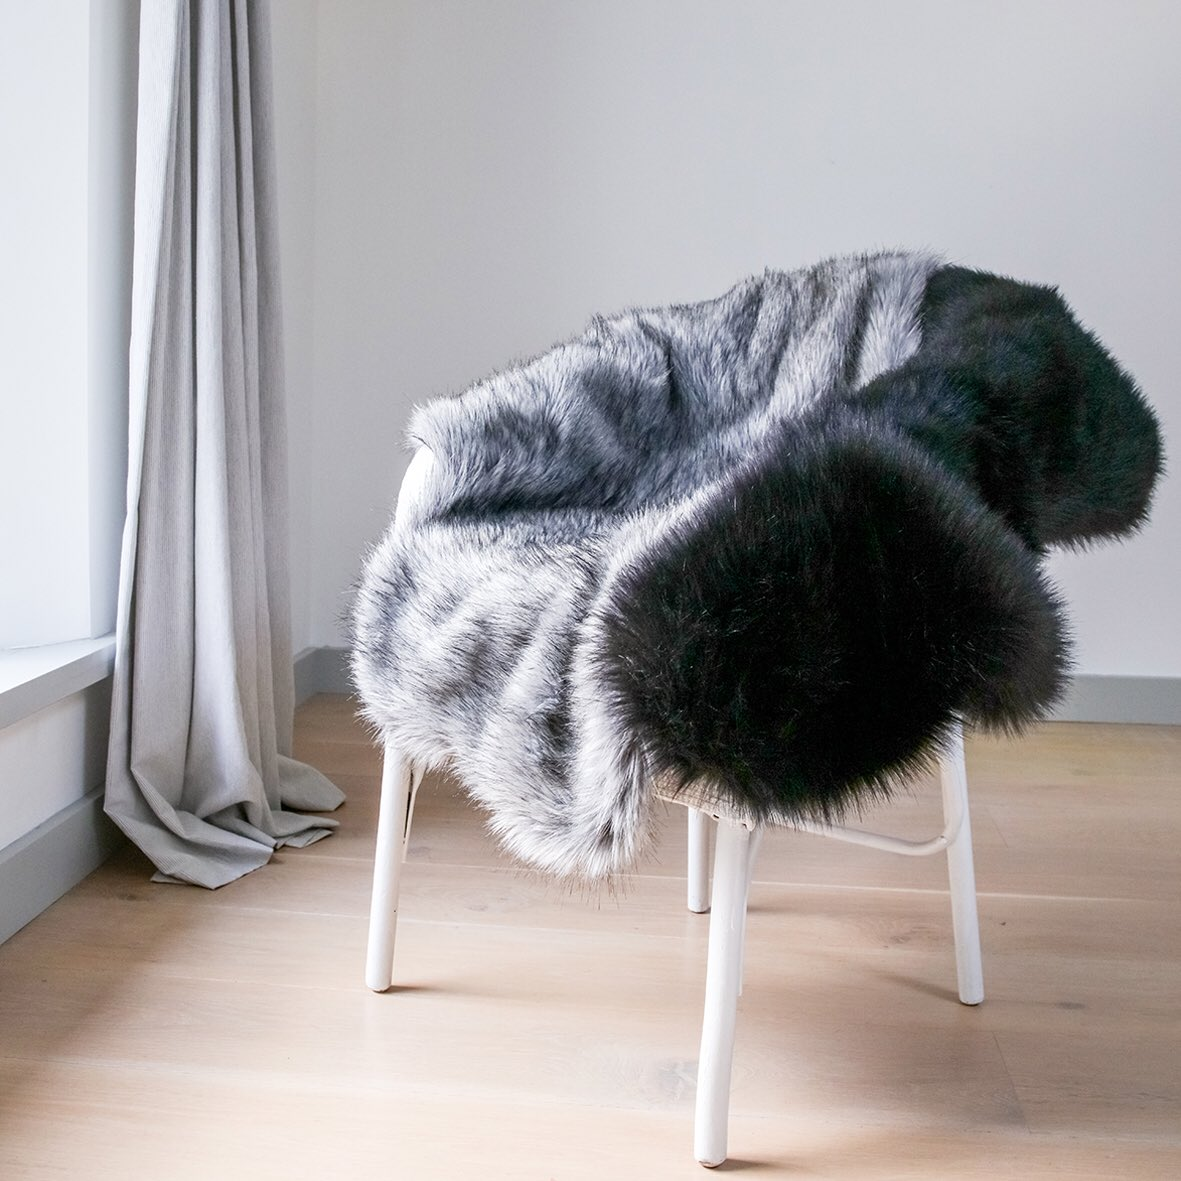 0e3638ce We're giving away a Comforter worth £173 in a faux fur of your choice  https://blog.helenmoore.com/2019/02/06/win-a-helen-moore-comforter-throw/ …